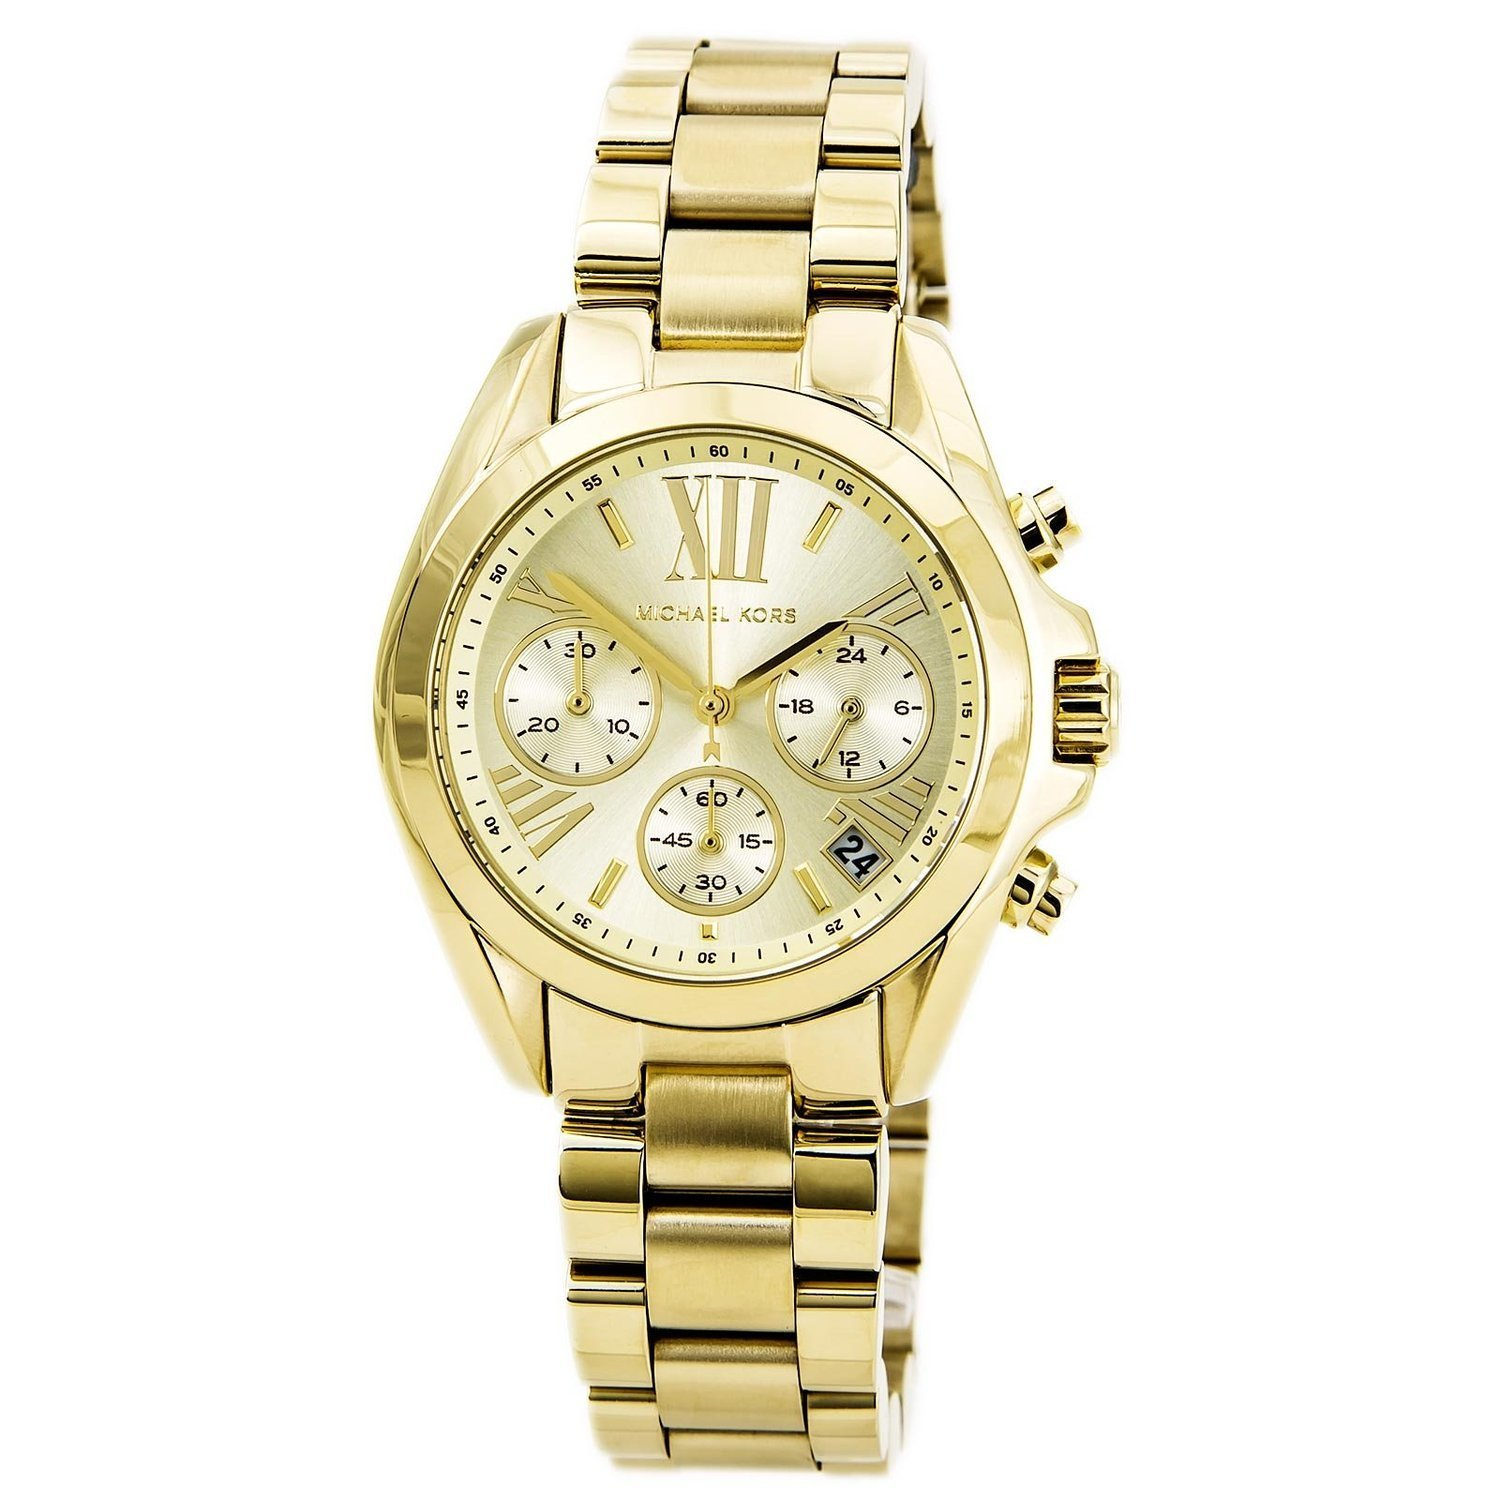 michael kors designer watches neqq  Michael Kors Women's Gold Stainless Steel Strap Watch MK5798